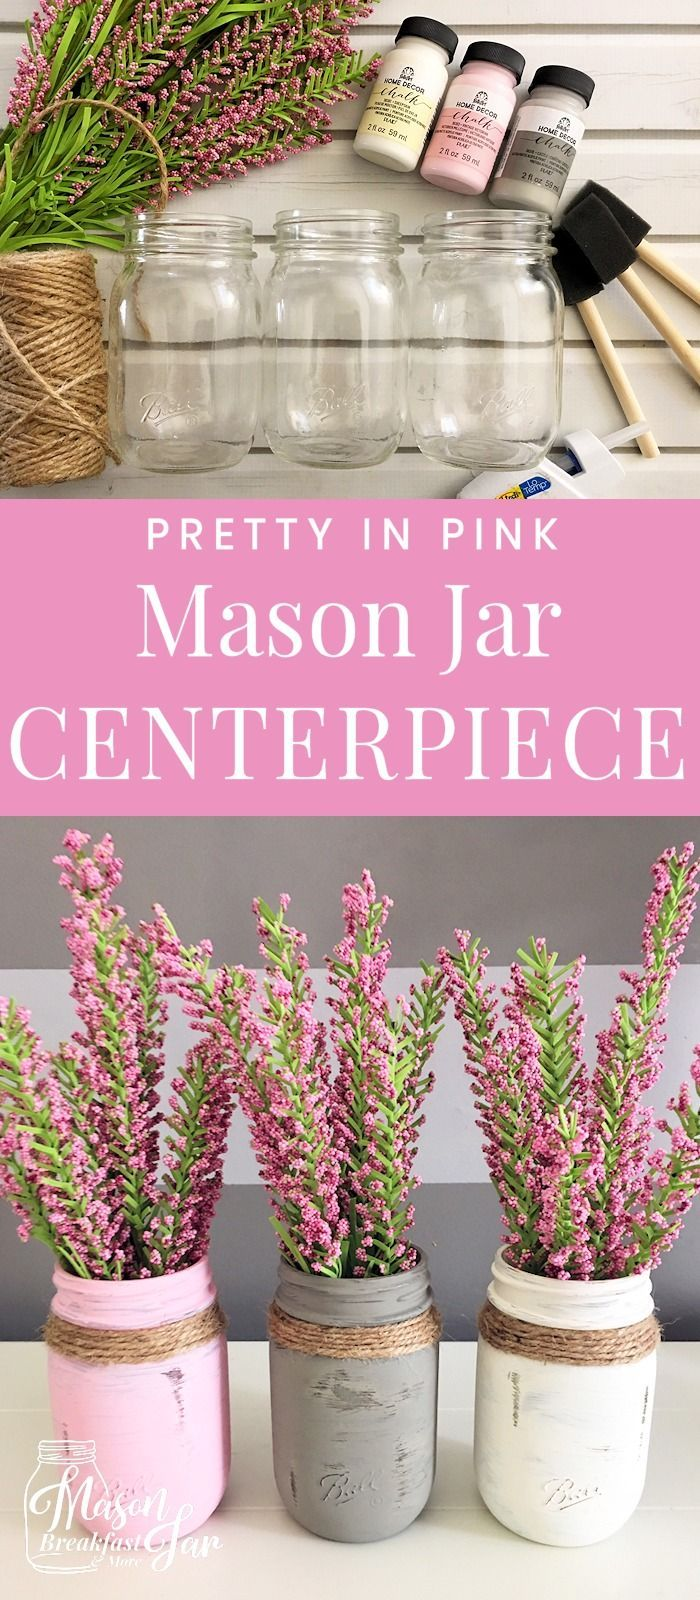 Whether you are looking for Mason jar centerpieces for weddings or ...